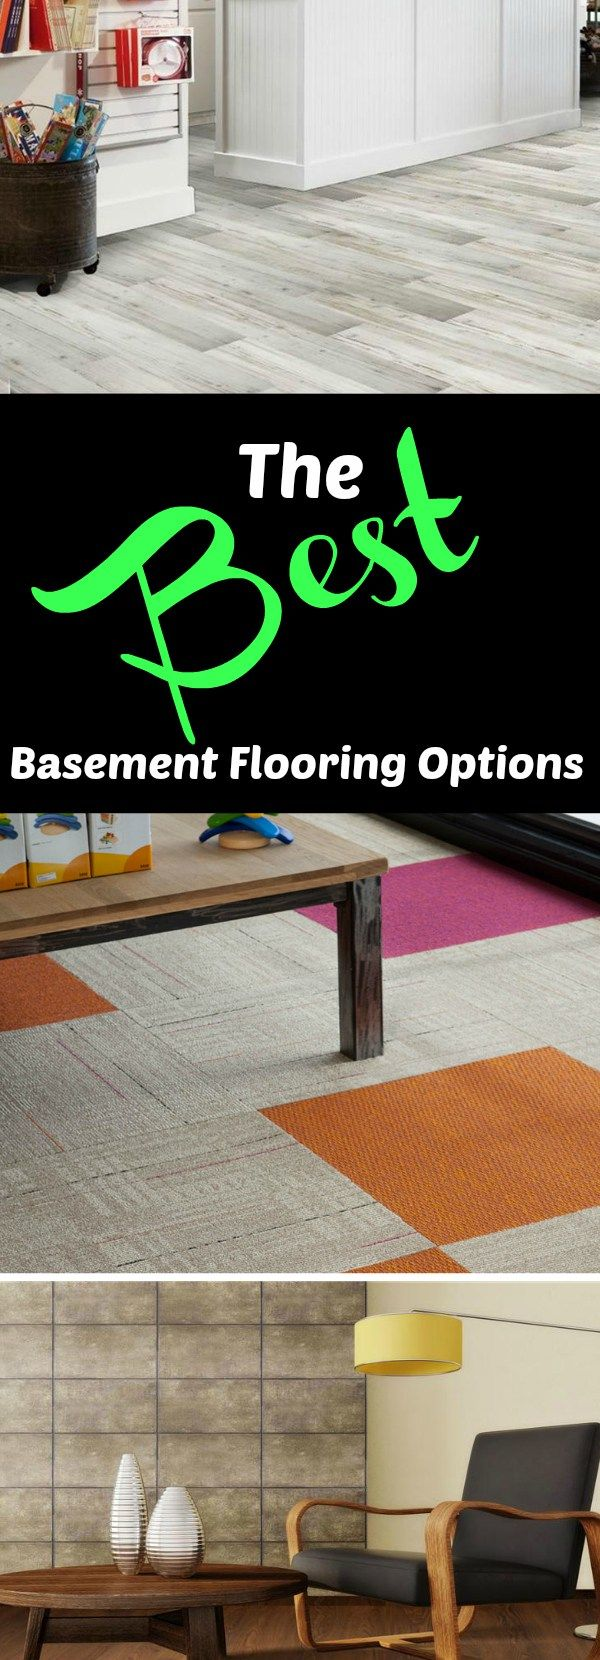 Floors For Basement Best Option Beautiful Image Of Best Laminate - Flooring options for basements that get water